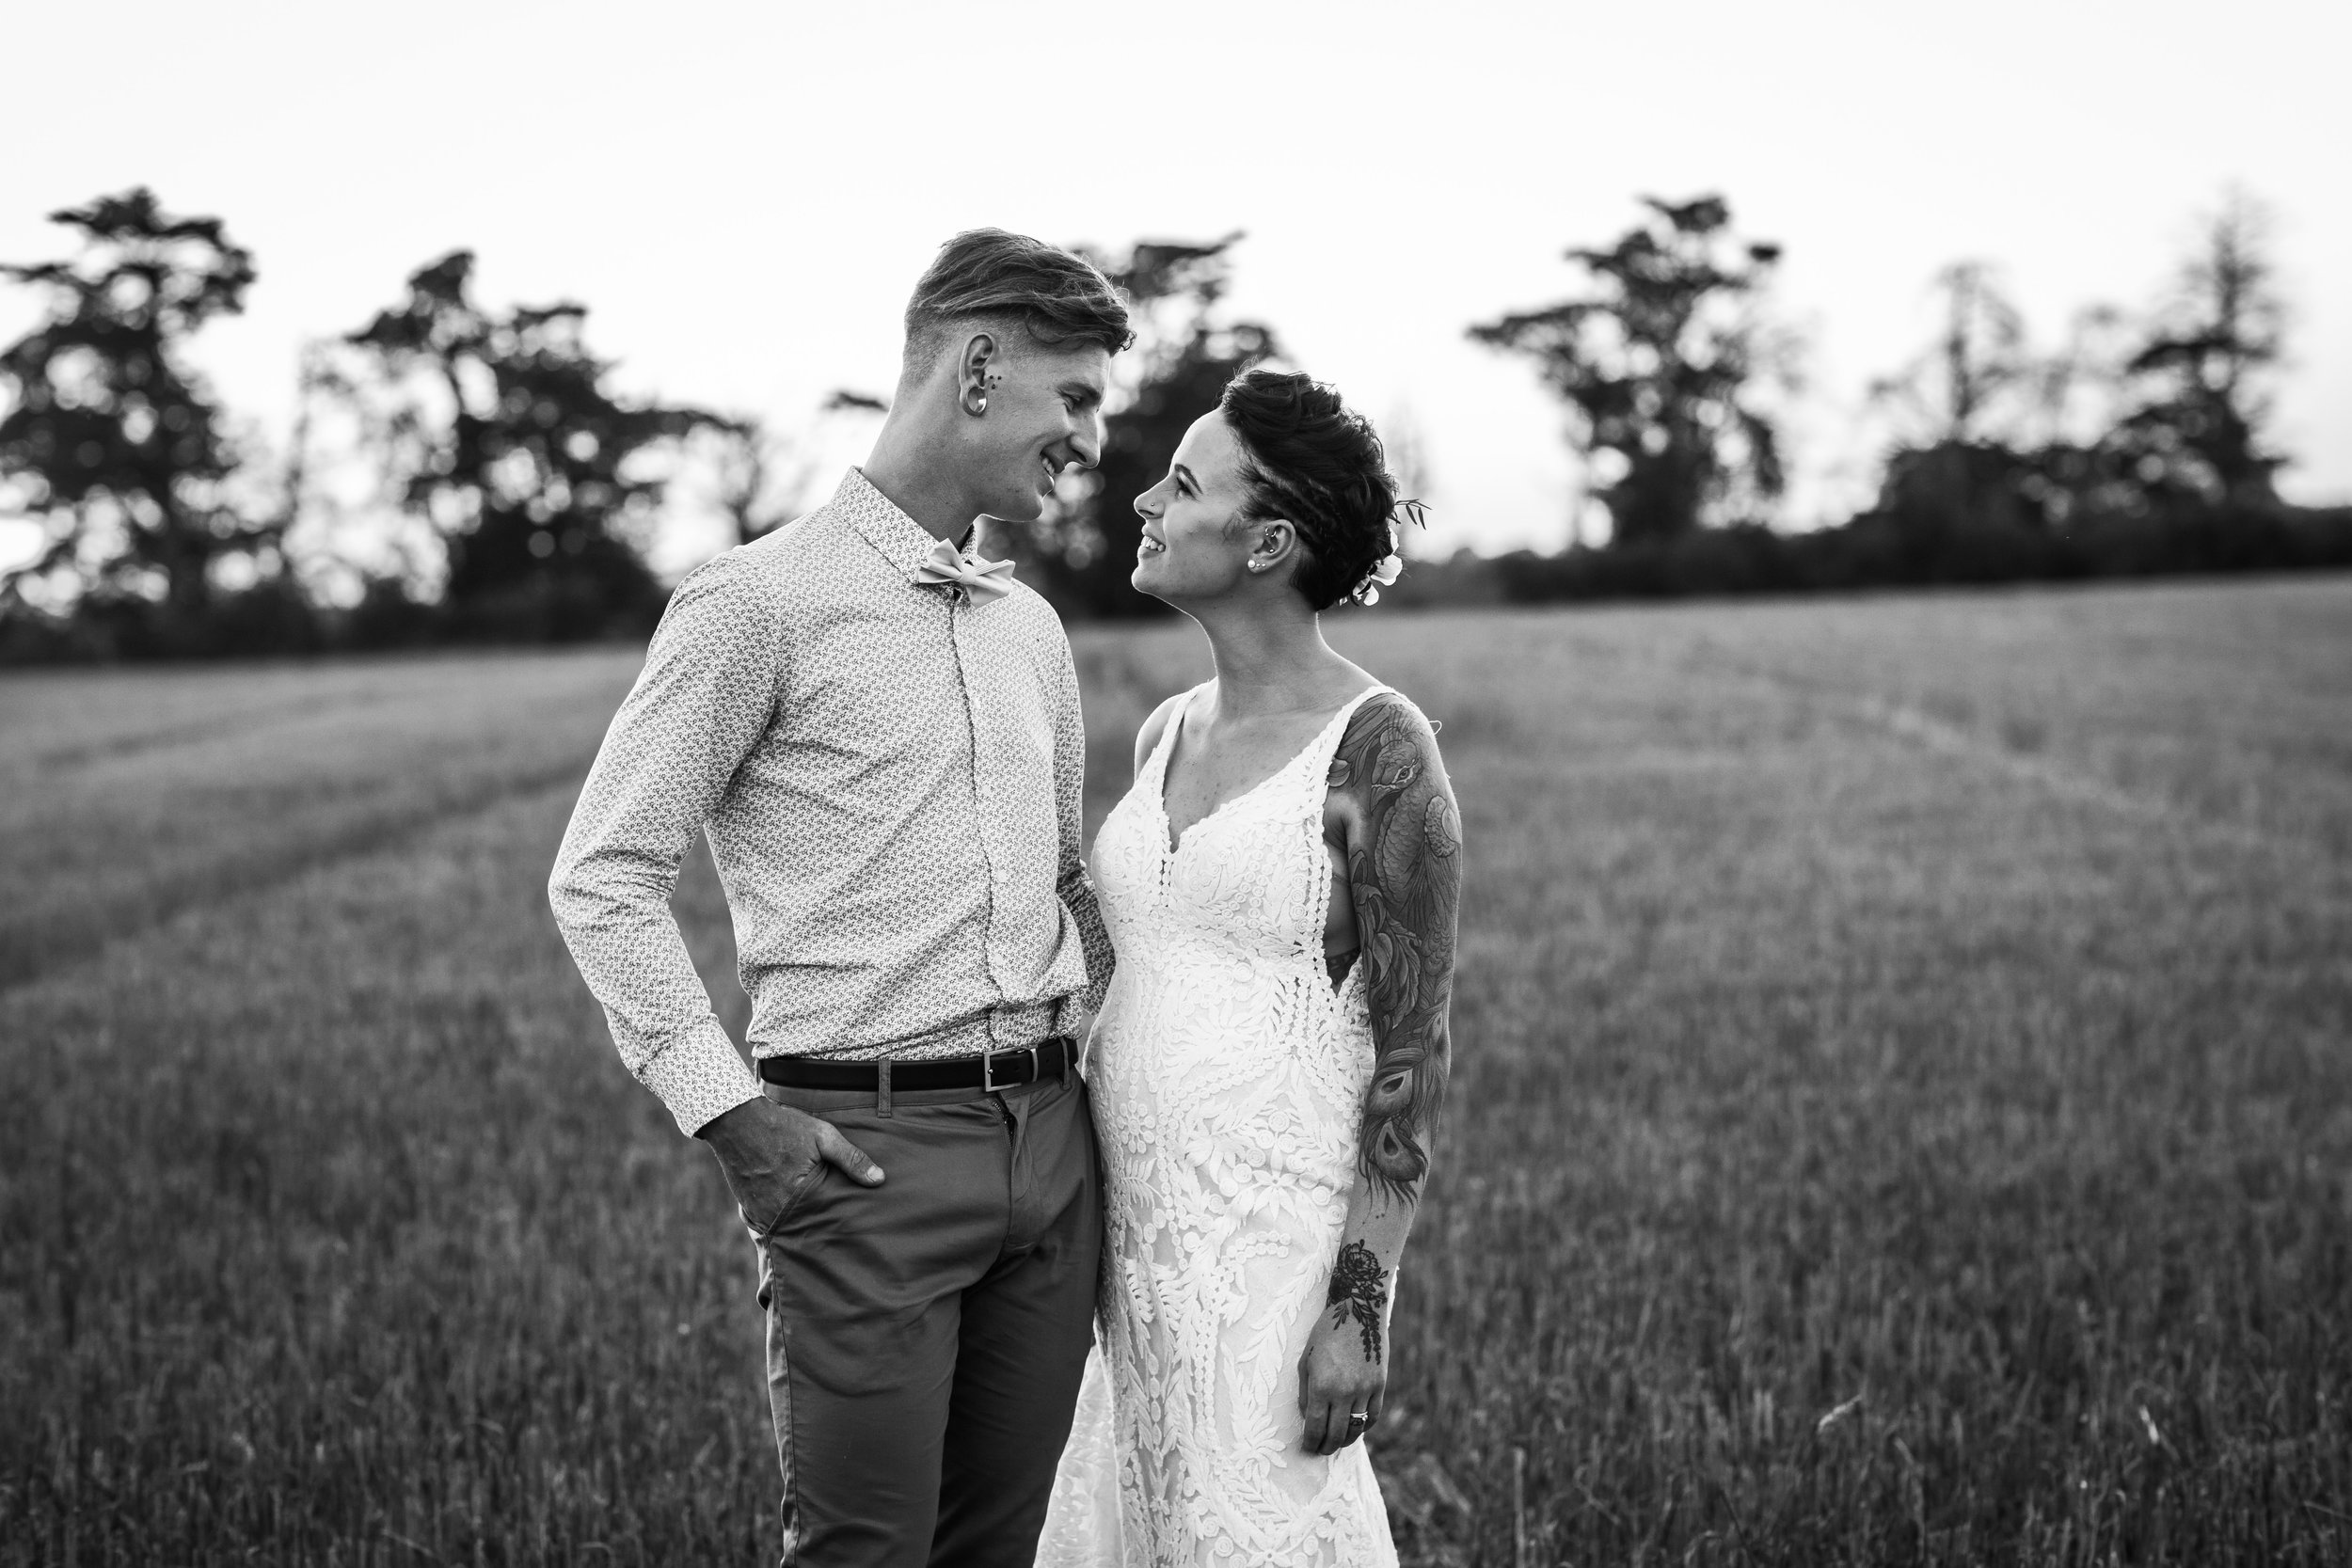 Bride and groom get married on their Geelong country property. After the wedding we had portraits at sunset in the open field.